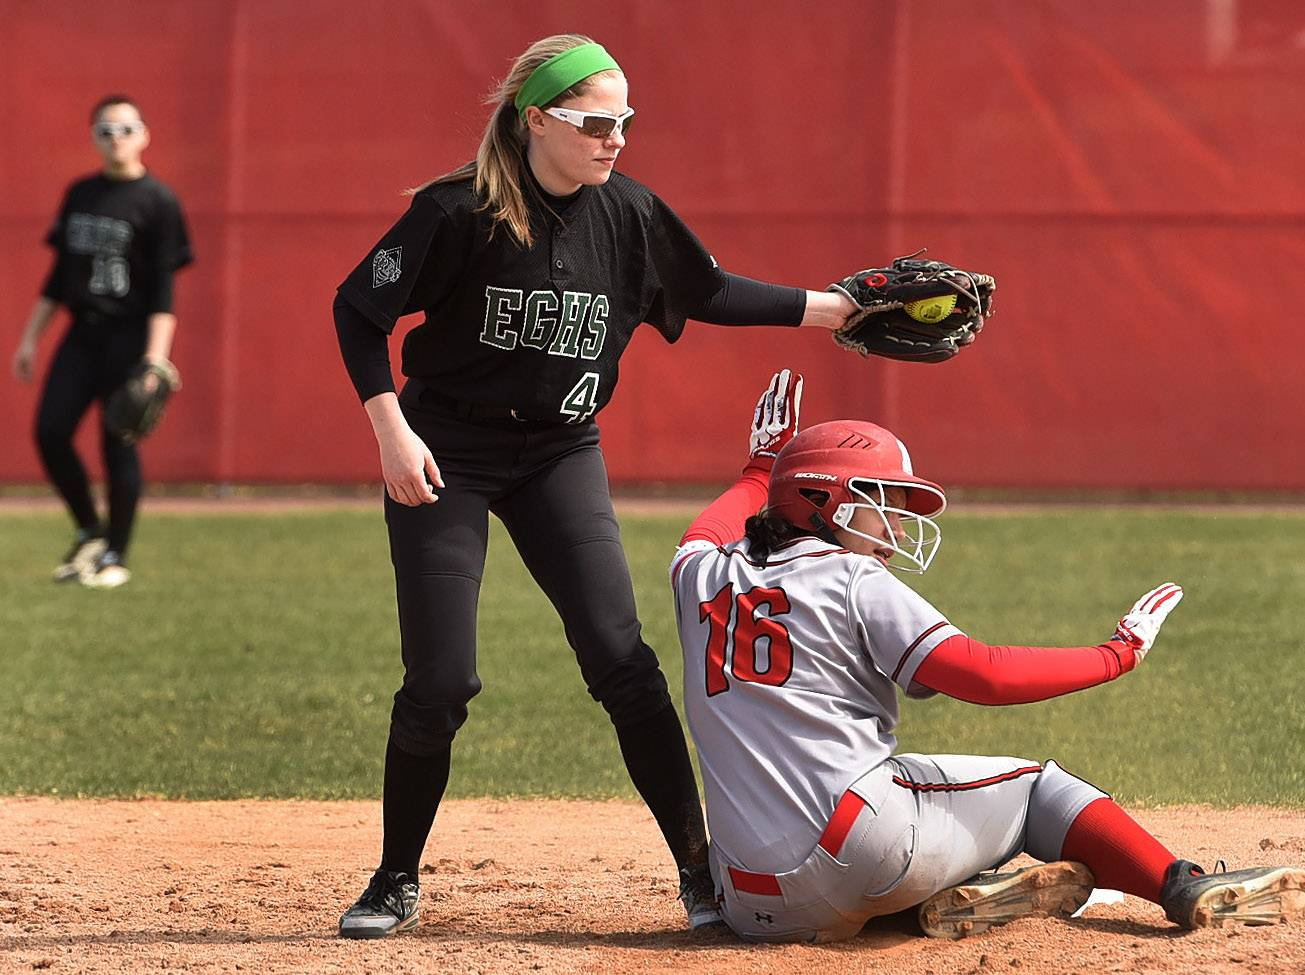 Mundelein's Kendall Klatt slides safely under the tag of Elk Grove's Keely Cronin while stealing during softball at Barrington's Fields of Dreams.